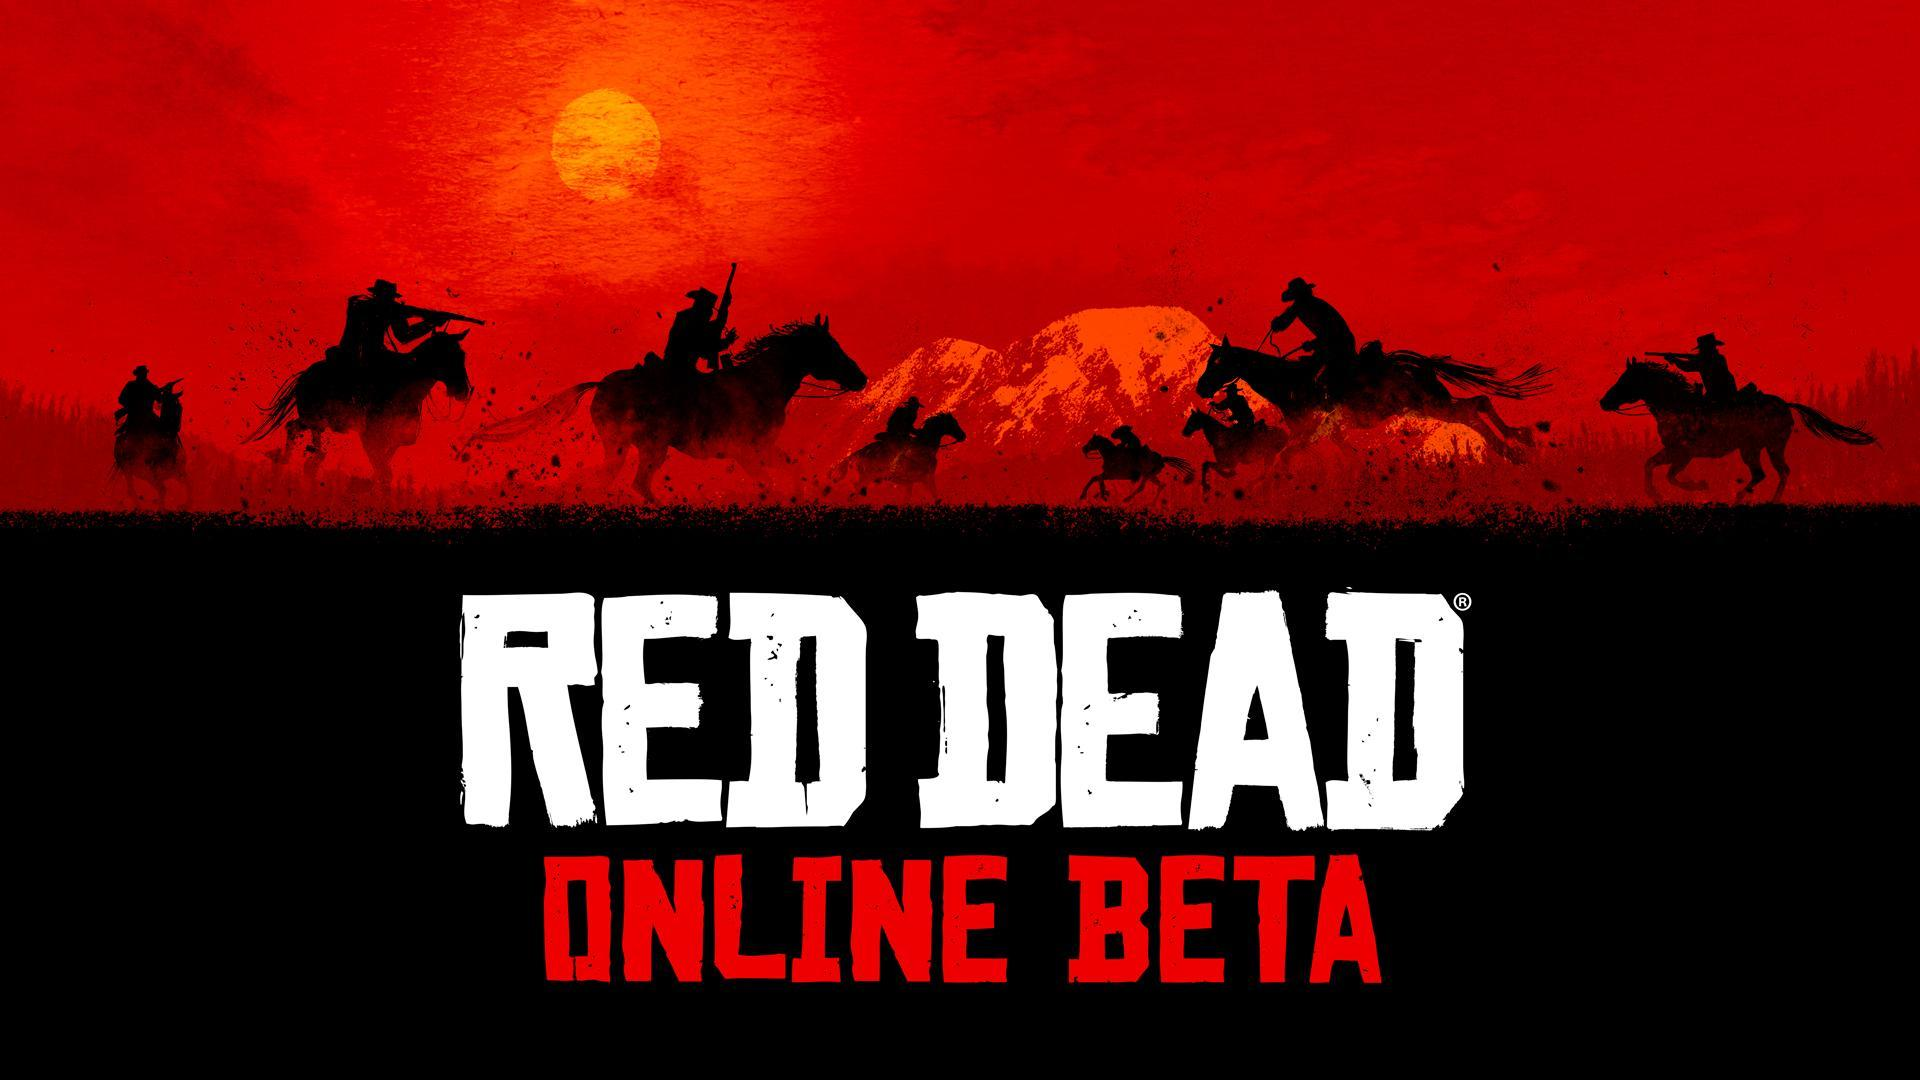 Red Dead Online Beta Early Access Begins Tomorrow, November 27!